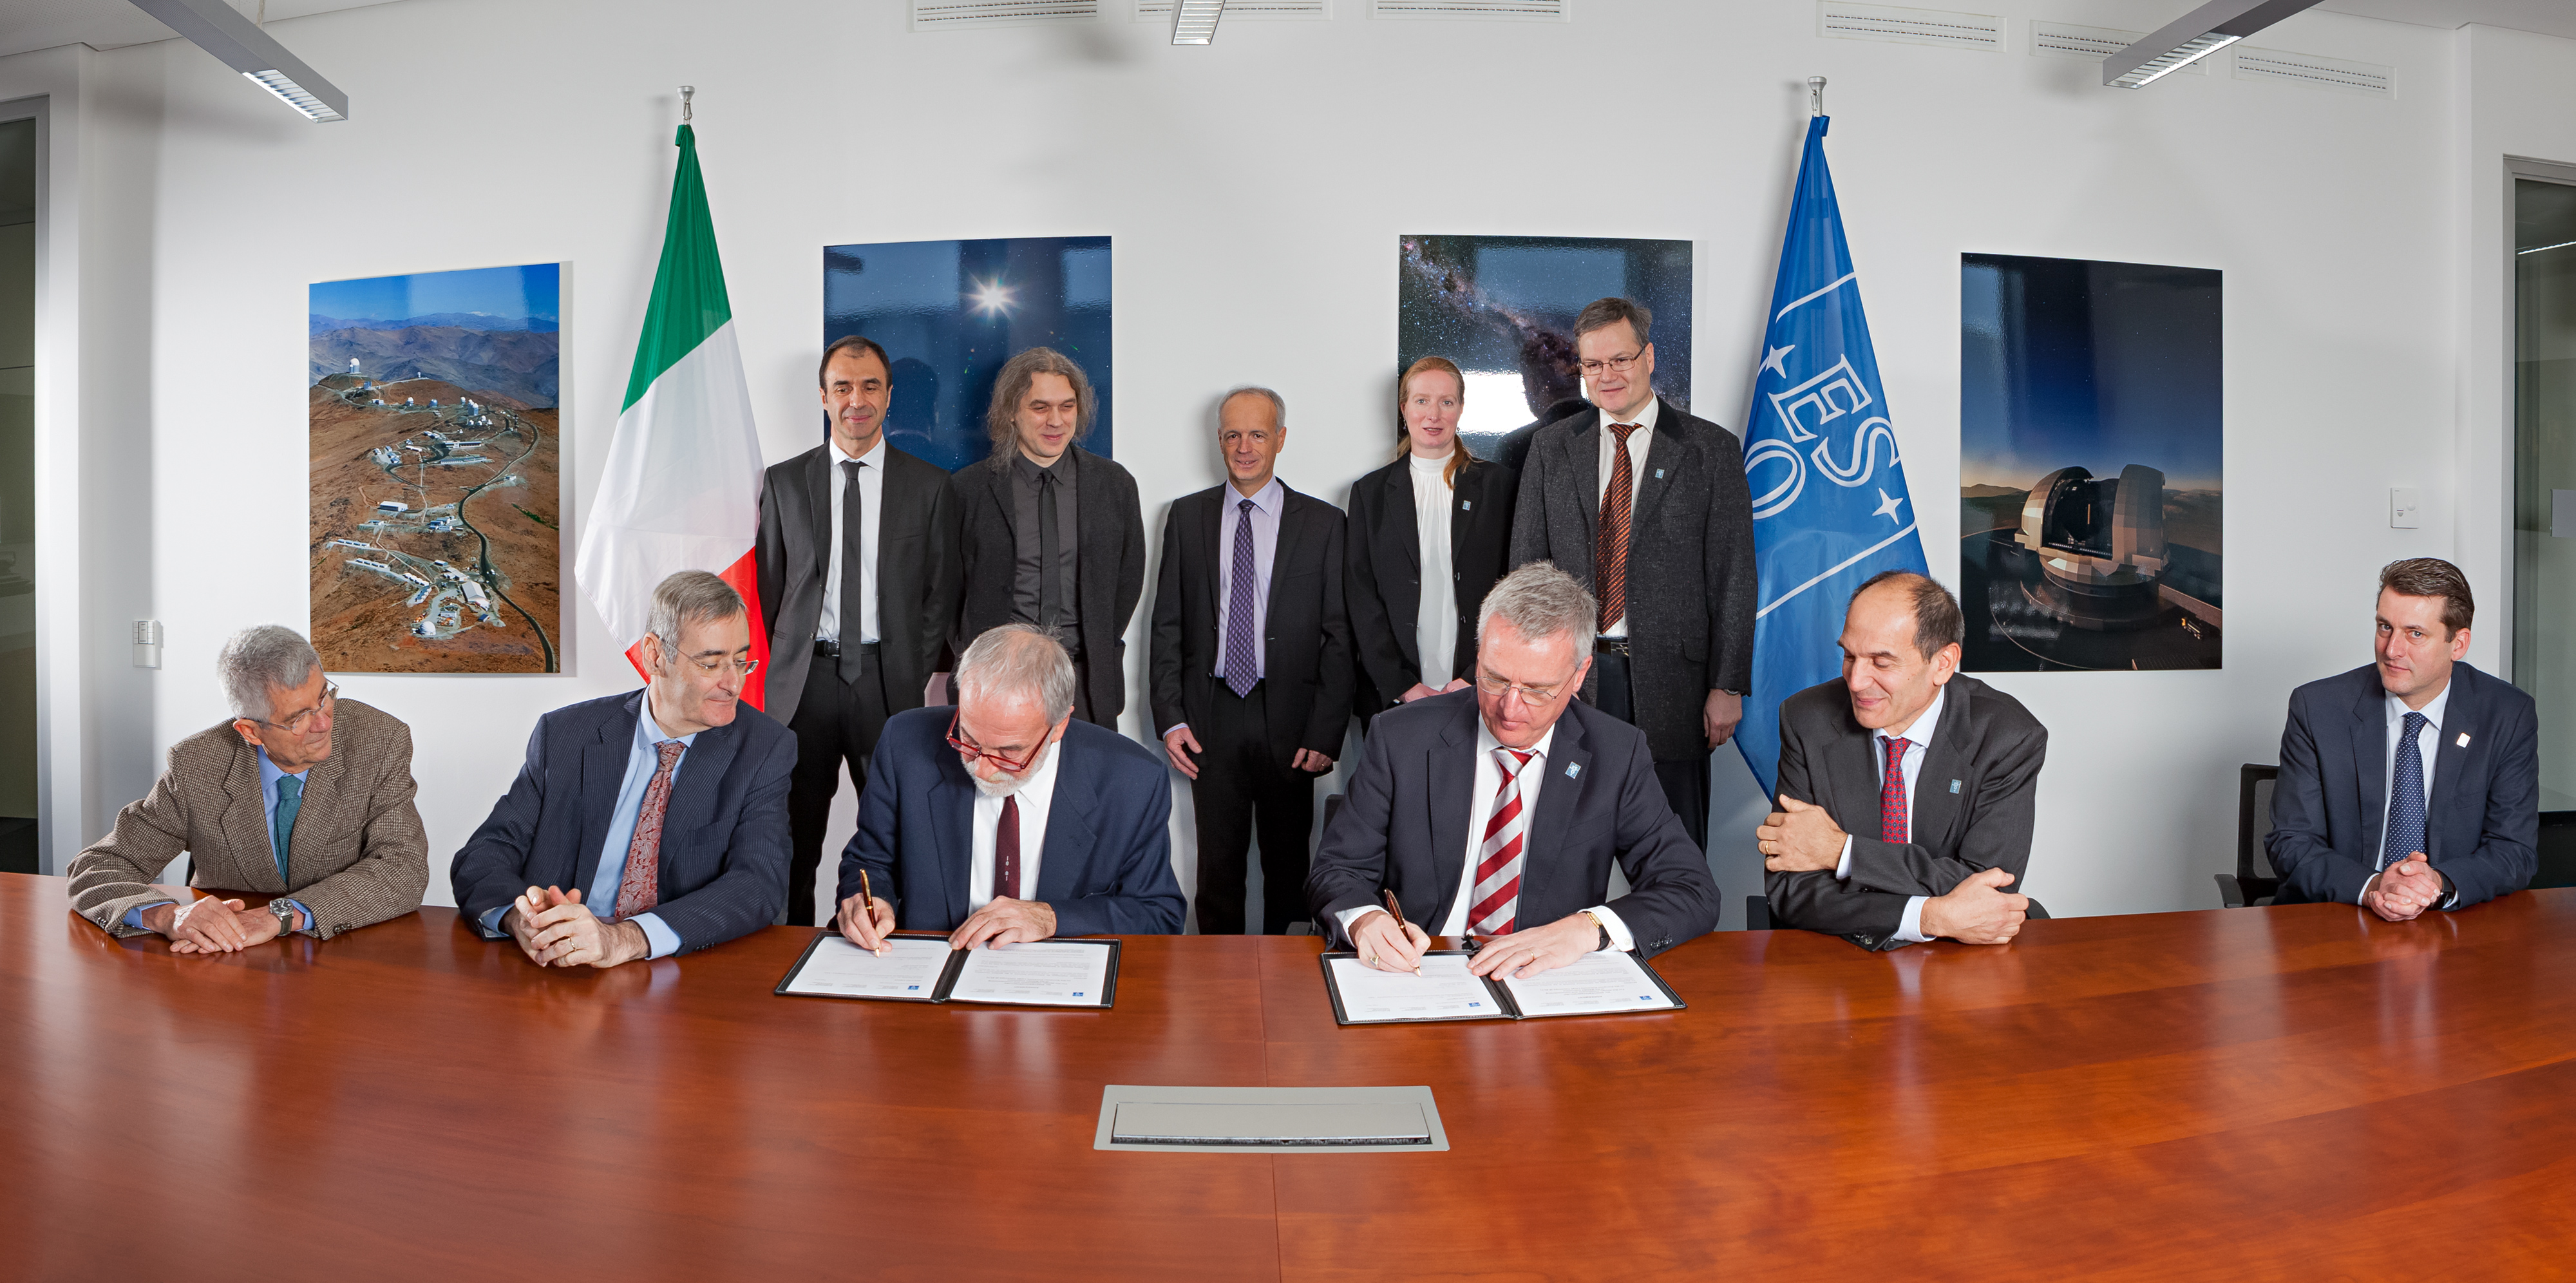 At a ceremony held at ESO Headquarters in Garching bei München,  Germany, on 10 December 2015 an agreement was signed between ESO and an  international consortium for the design and construction of the MAORY adaptive optics system for the European Extremely Large Telescope (E-ELT). The agreement was signed by Nicolò D'Amico, President of the Istituto Nazionale di Astrofisica (INAF, Italy), on behalf of the consortium, and Tim de Zeeuw, ESO Director General.